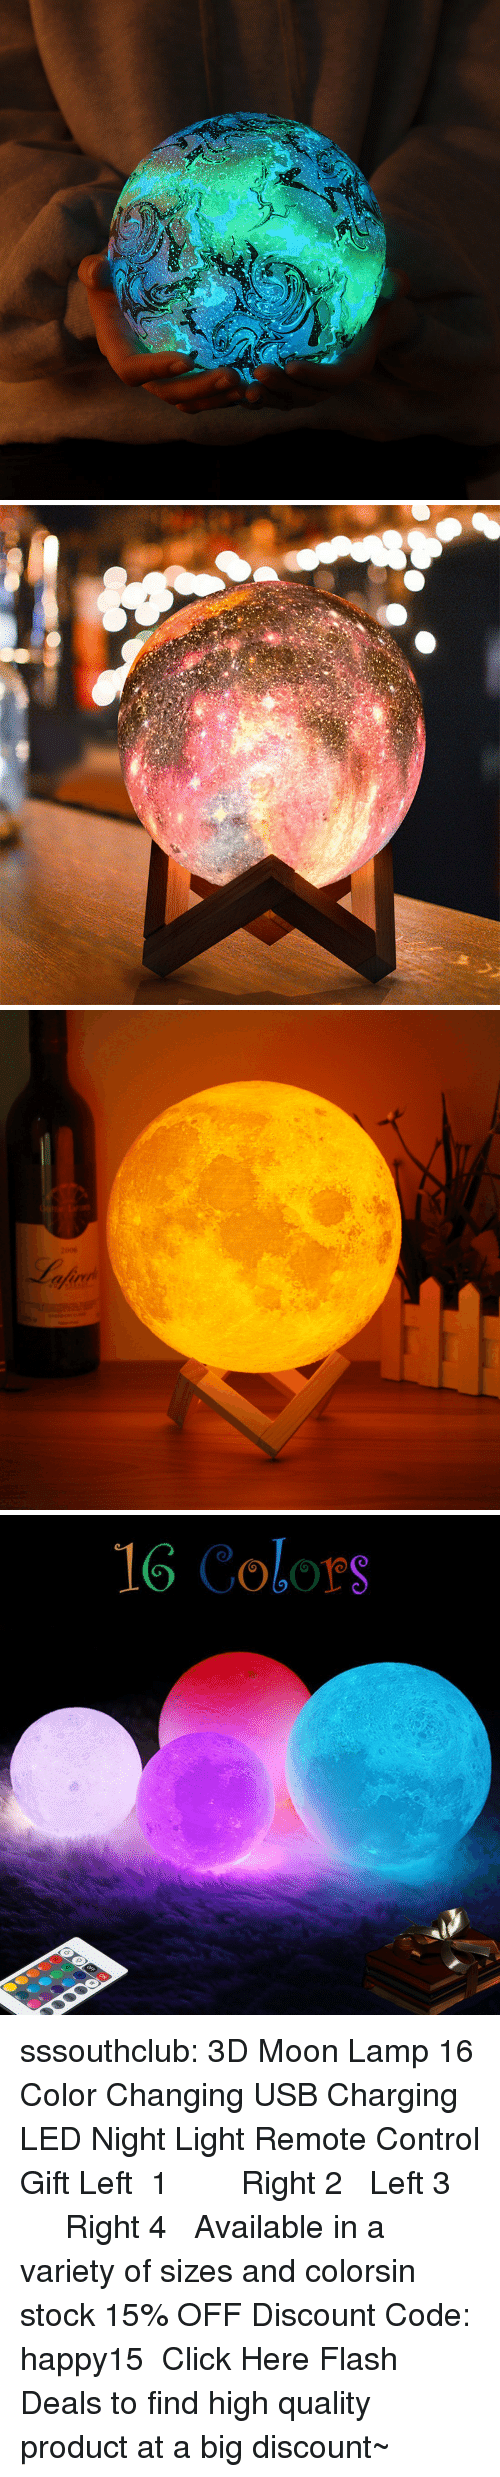 Click, Tumblr, and Control: 2006  fuv   16 Colors sssouthclub: 3D Moon Lamp 16 Color Changing USB Charging LED Night Light Remote Control Gift  Left 1  ☆★  Right 2   Left 3  ☆★  Right 4  Available in a variety of sizes and colors,in stock 15% OFF Discount Code: happy15 ★ Click Here Flash Deals to find high quality product at a big discount~